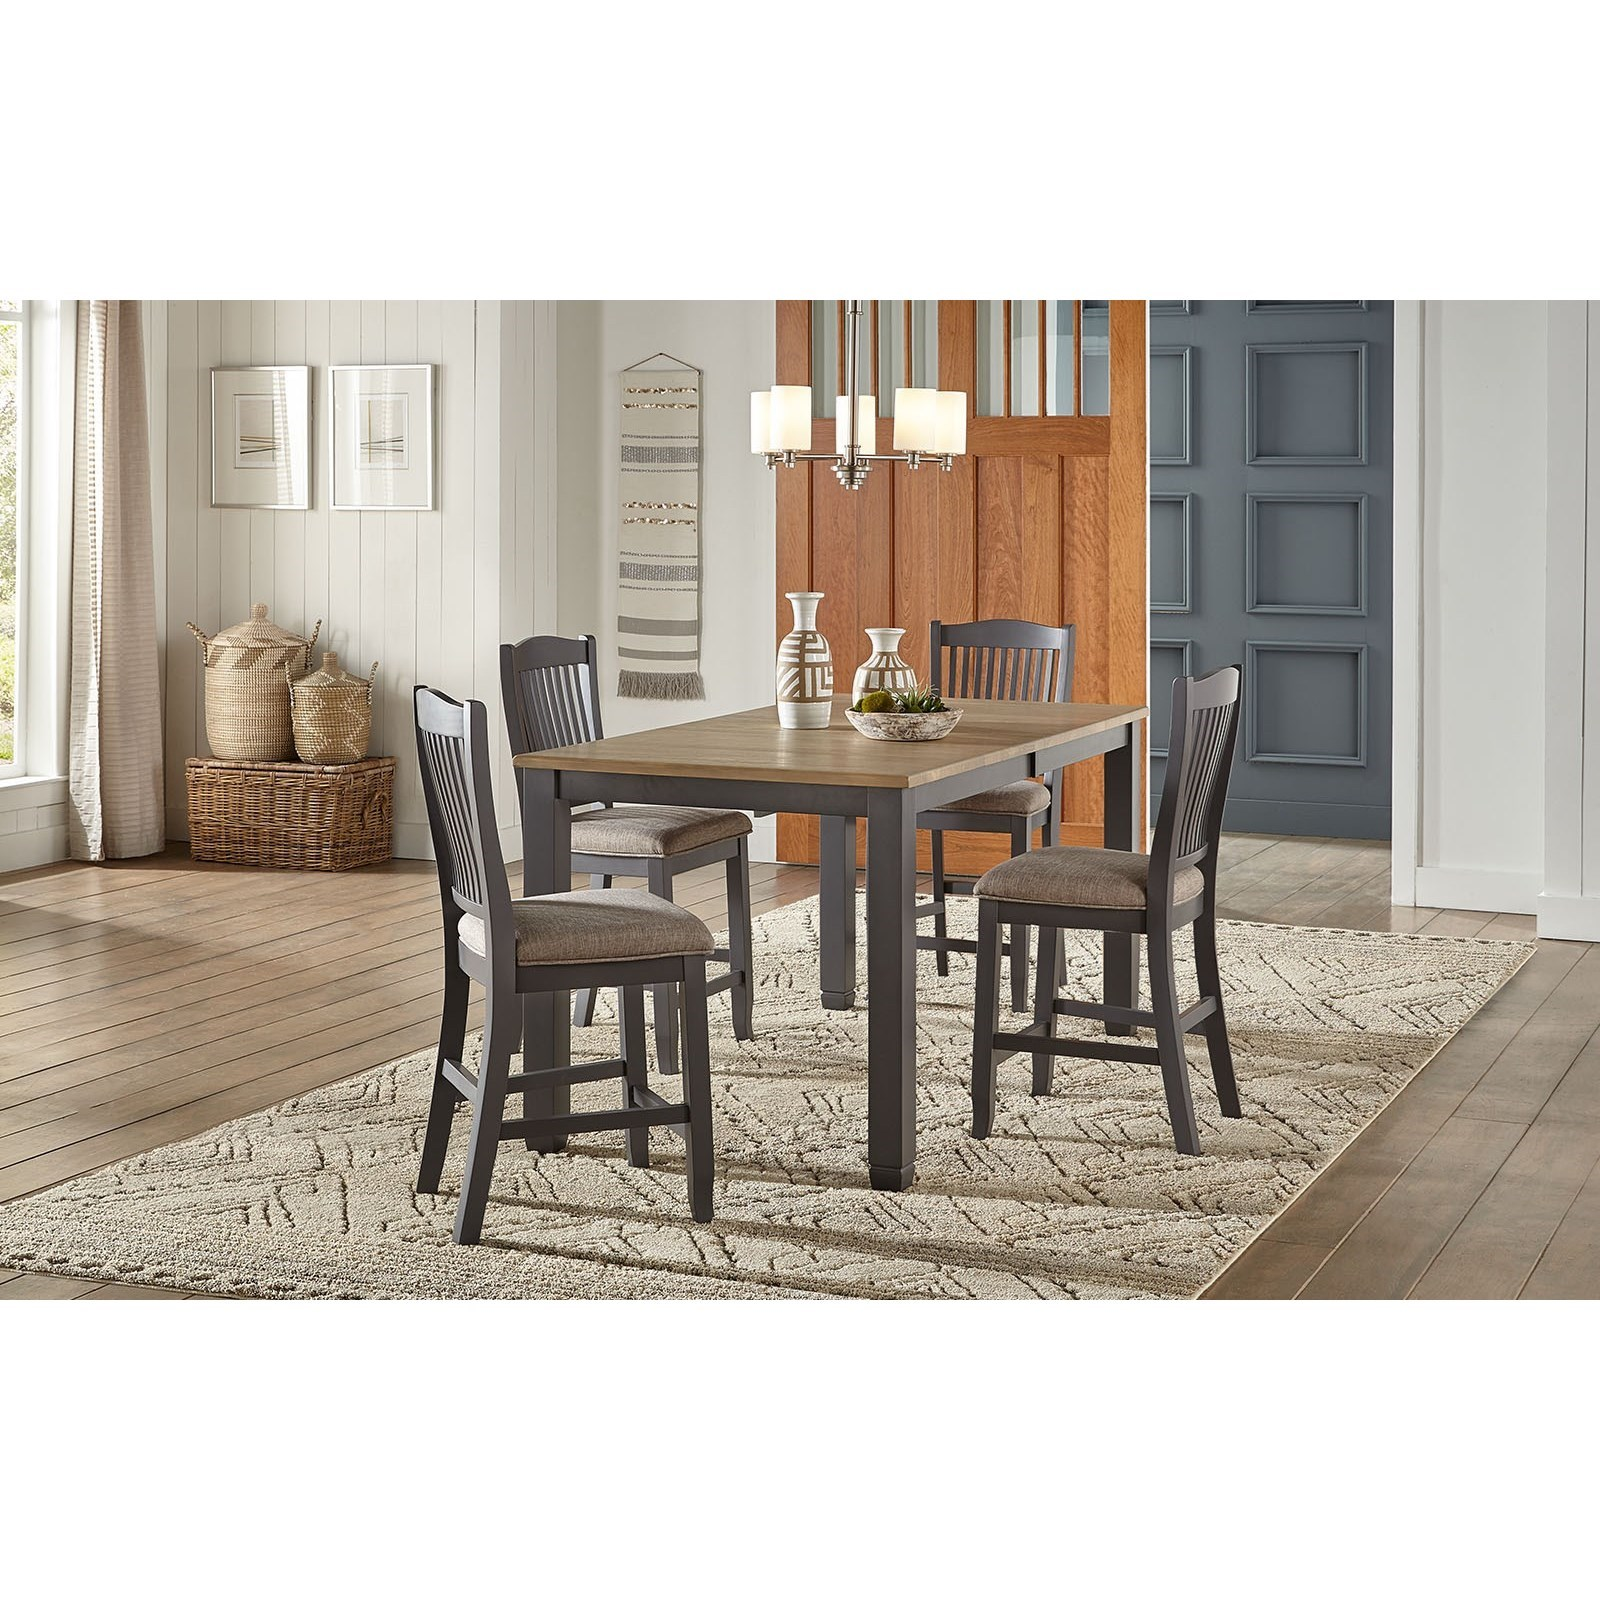 Port Townsend 5-Piece Gathering Height Table and Chair Set by AAmerica at Dinette Depot